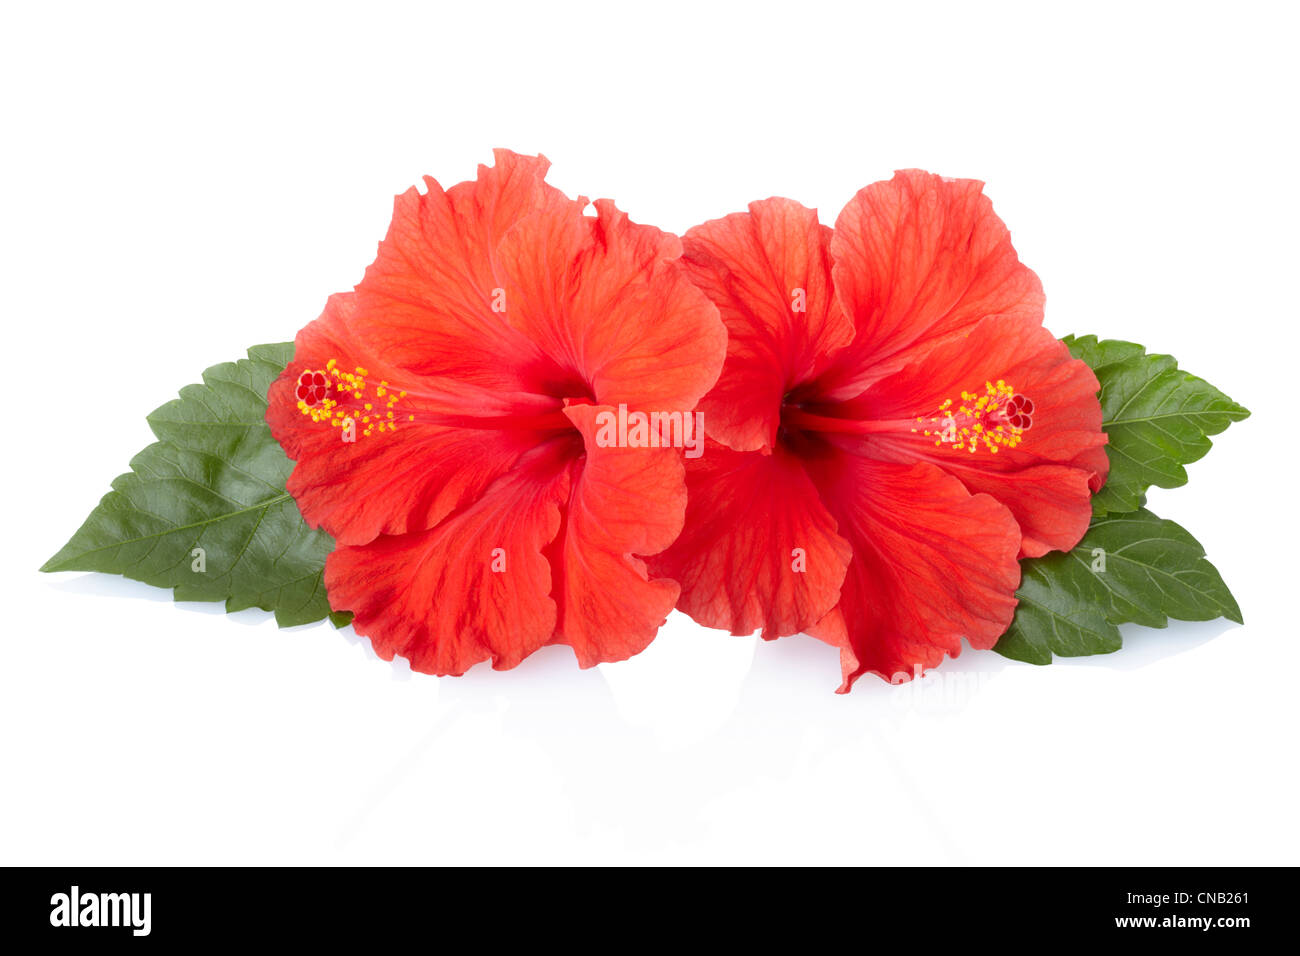 Red Hibiscus Flower With Leaves Stock Photo 47571721 Alamy